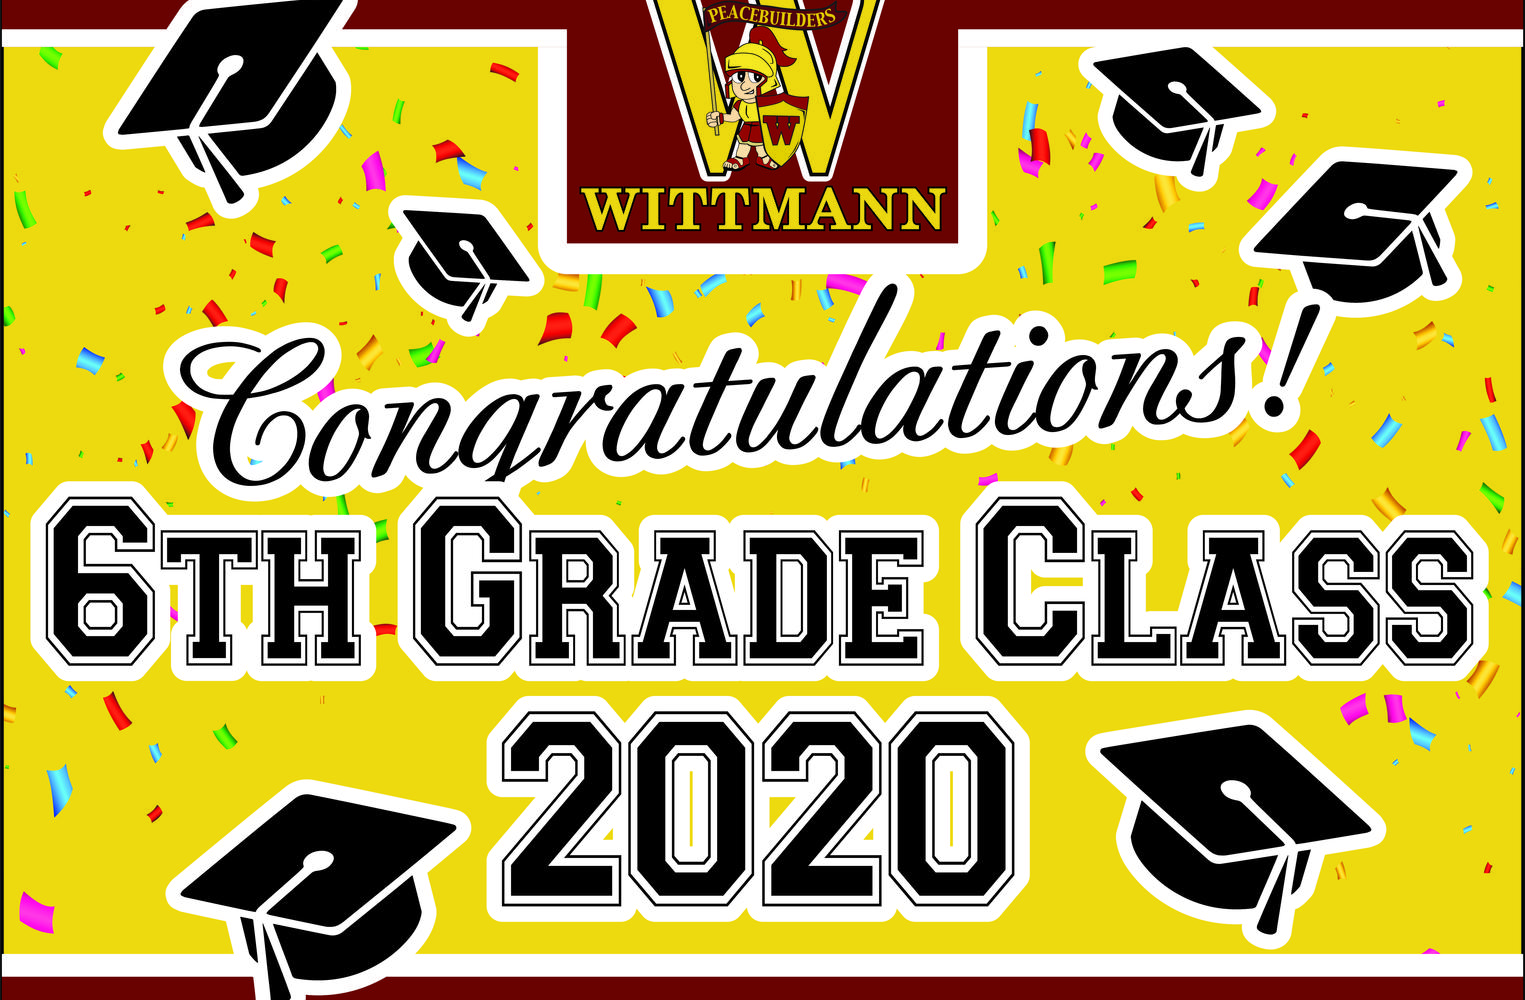 Banner congratulating our 2020 6th grade class